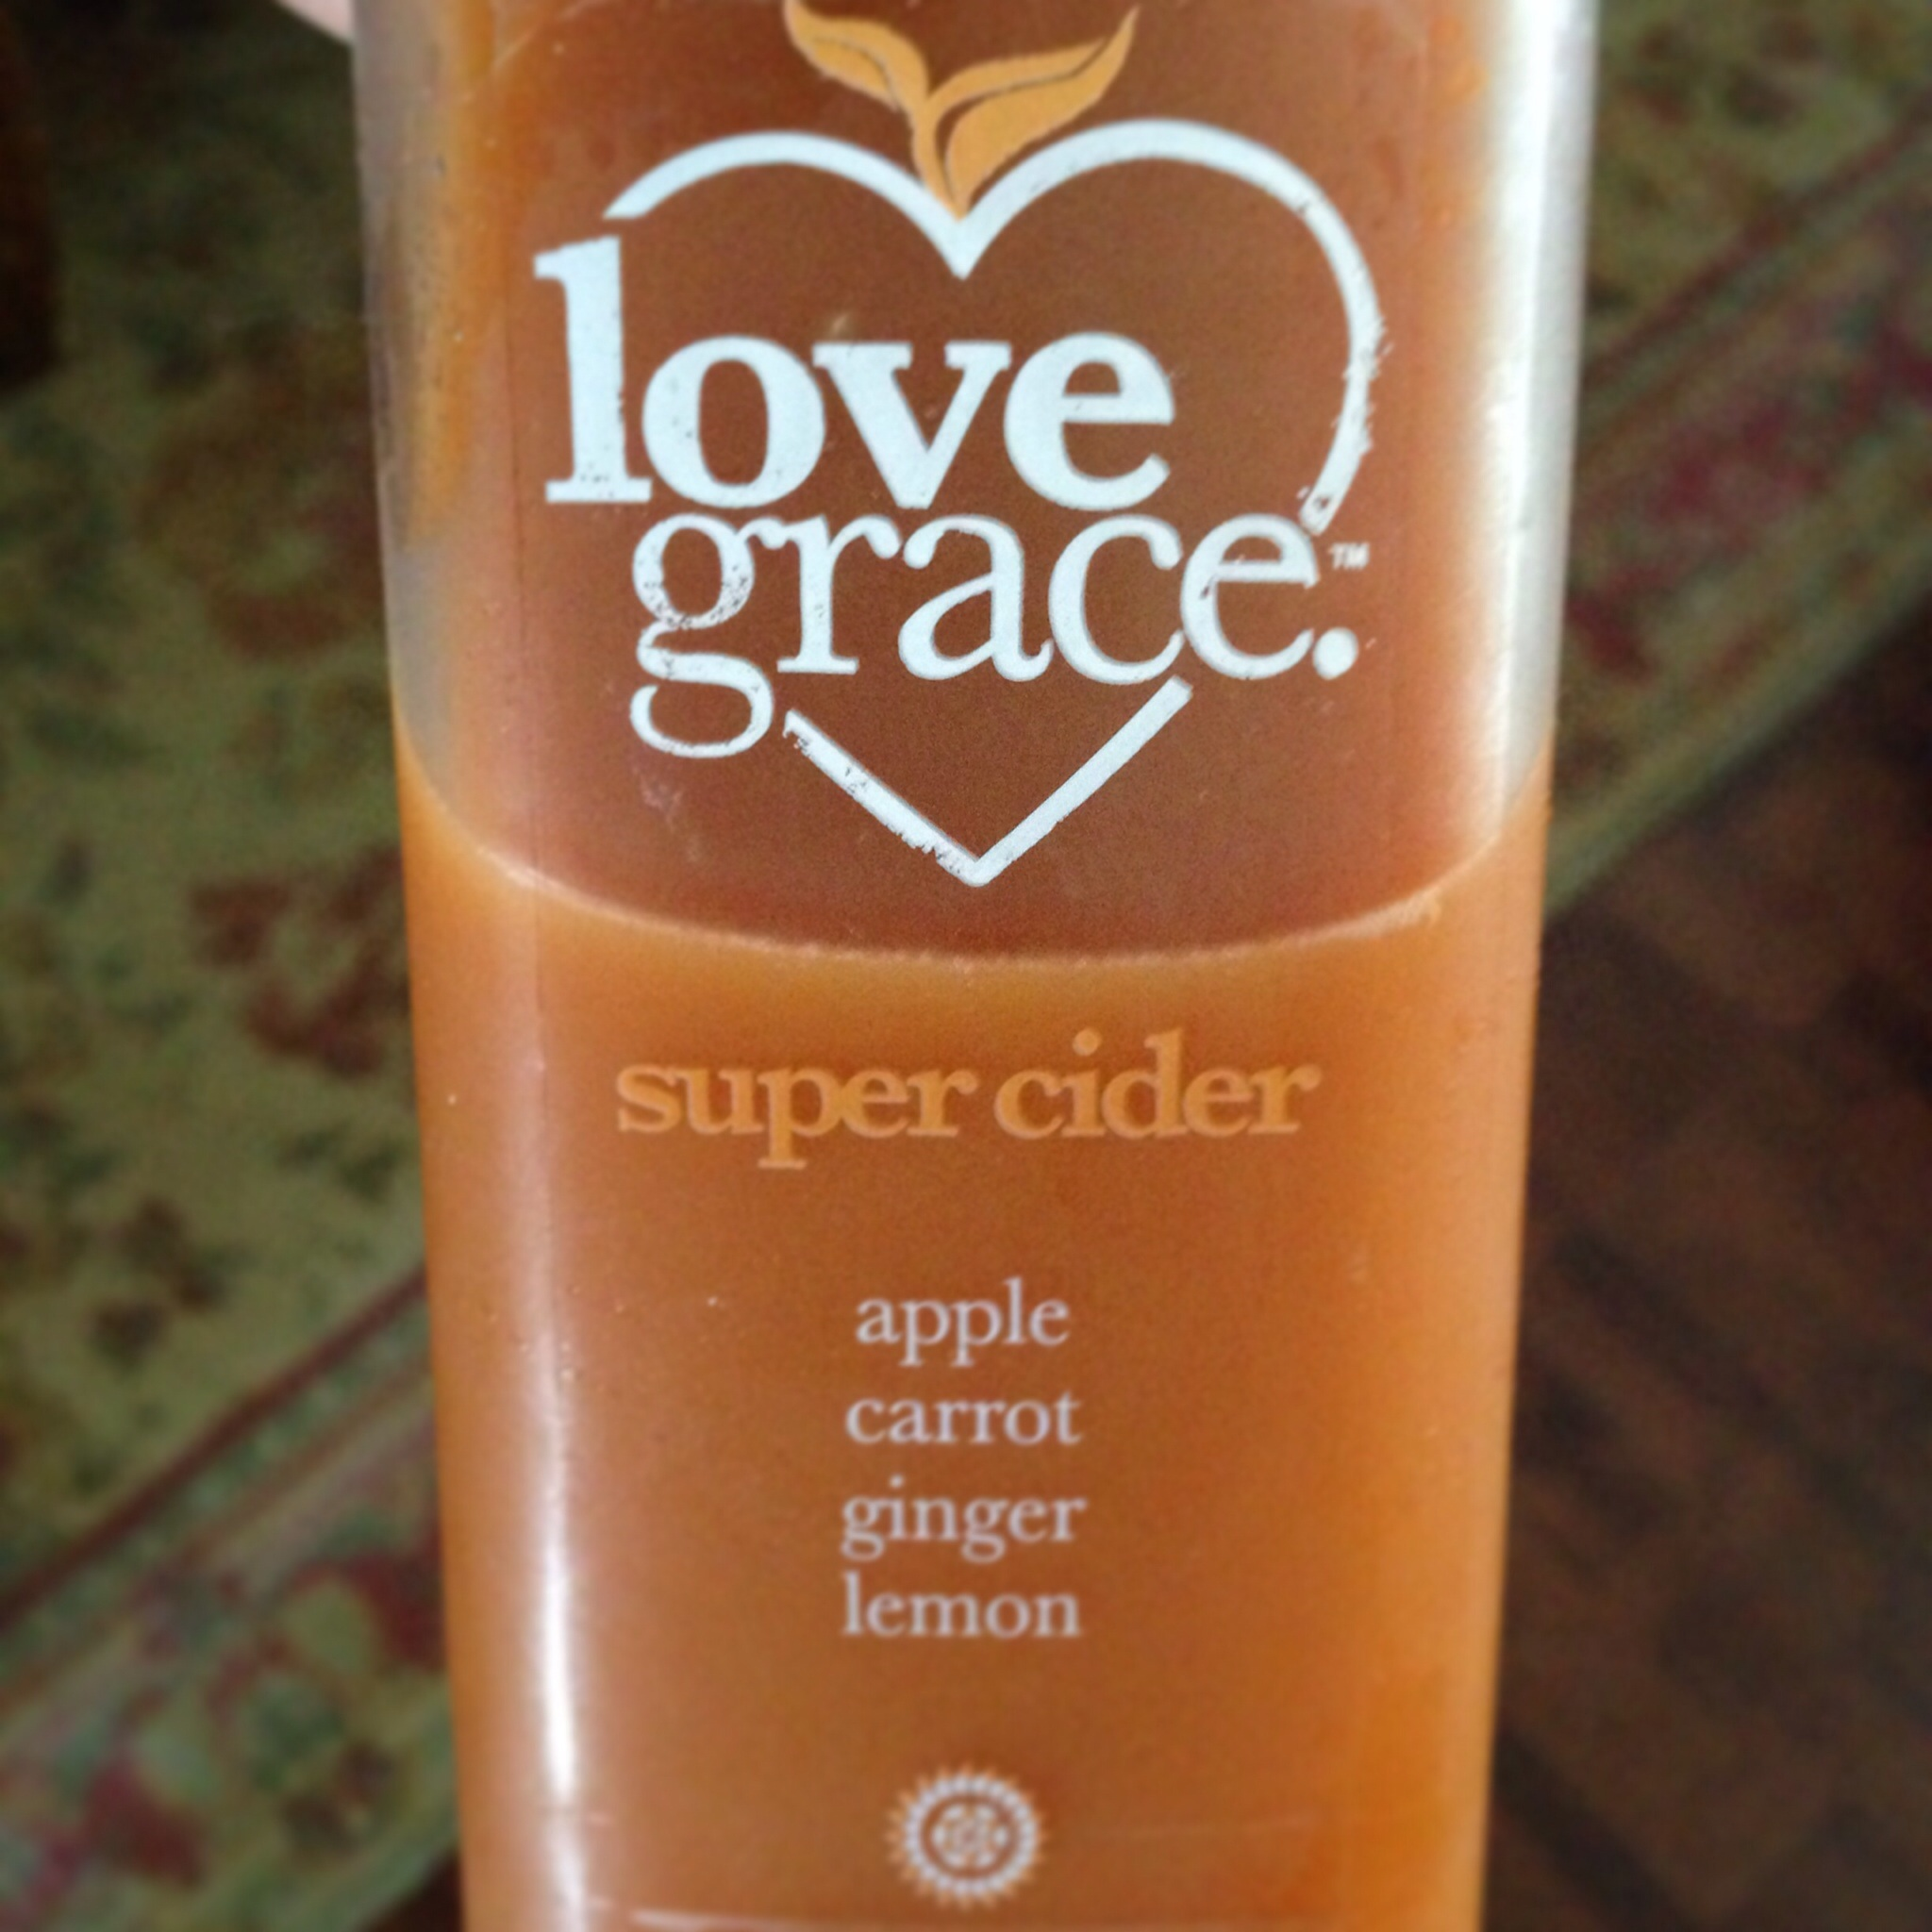 Love Grace Super Cider